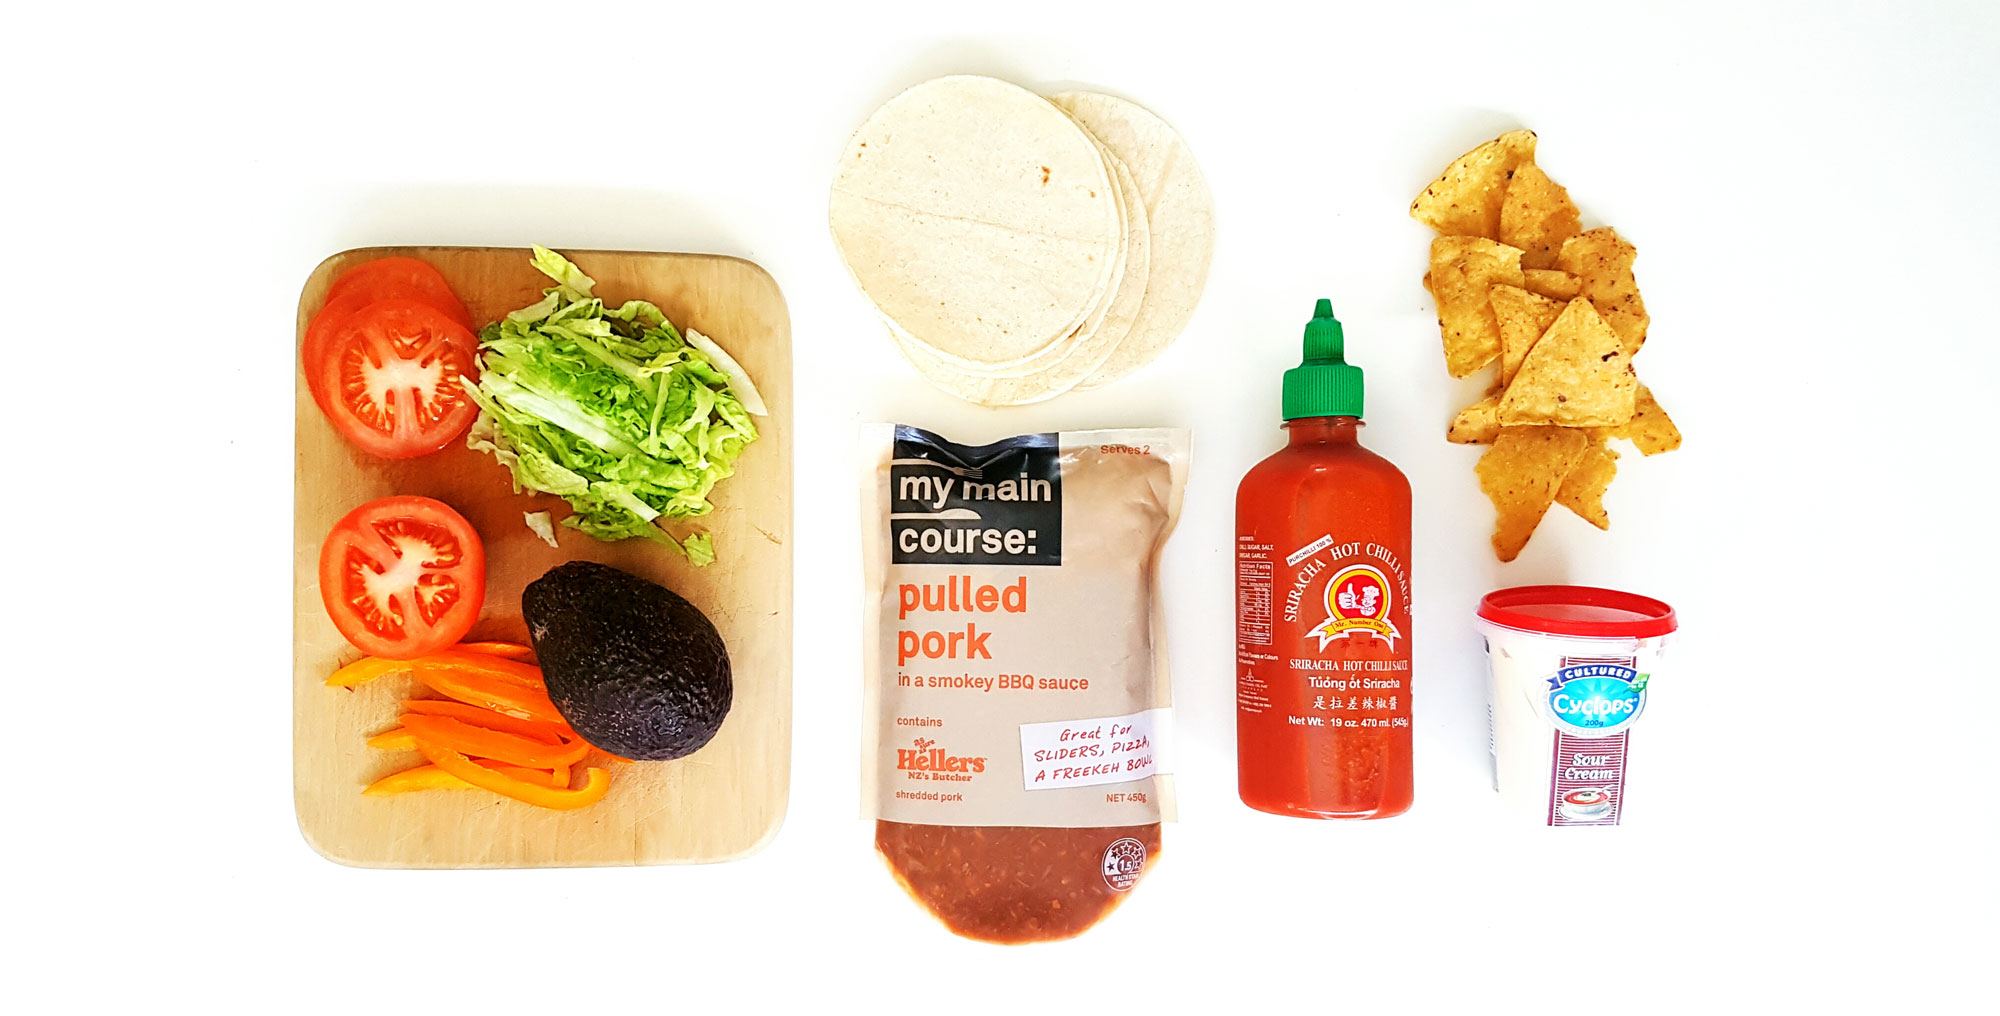 New Zealand's Top Mummy Blogger Parenting Travel Blog Pulled Pork Recipe